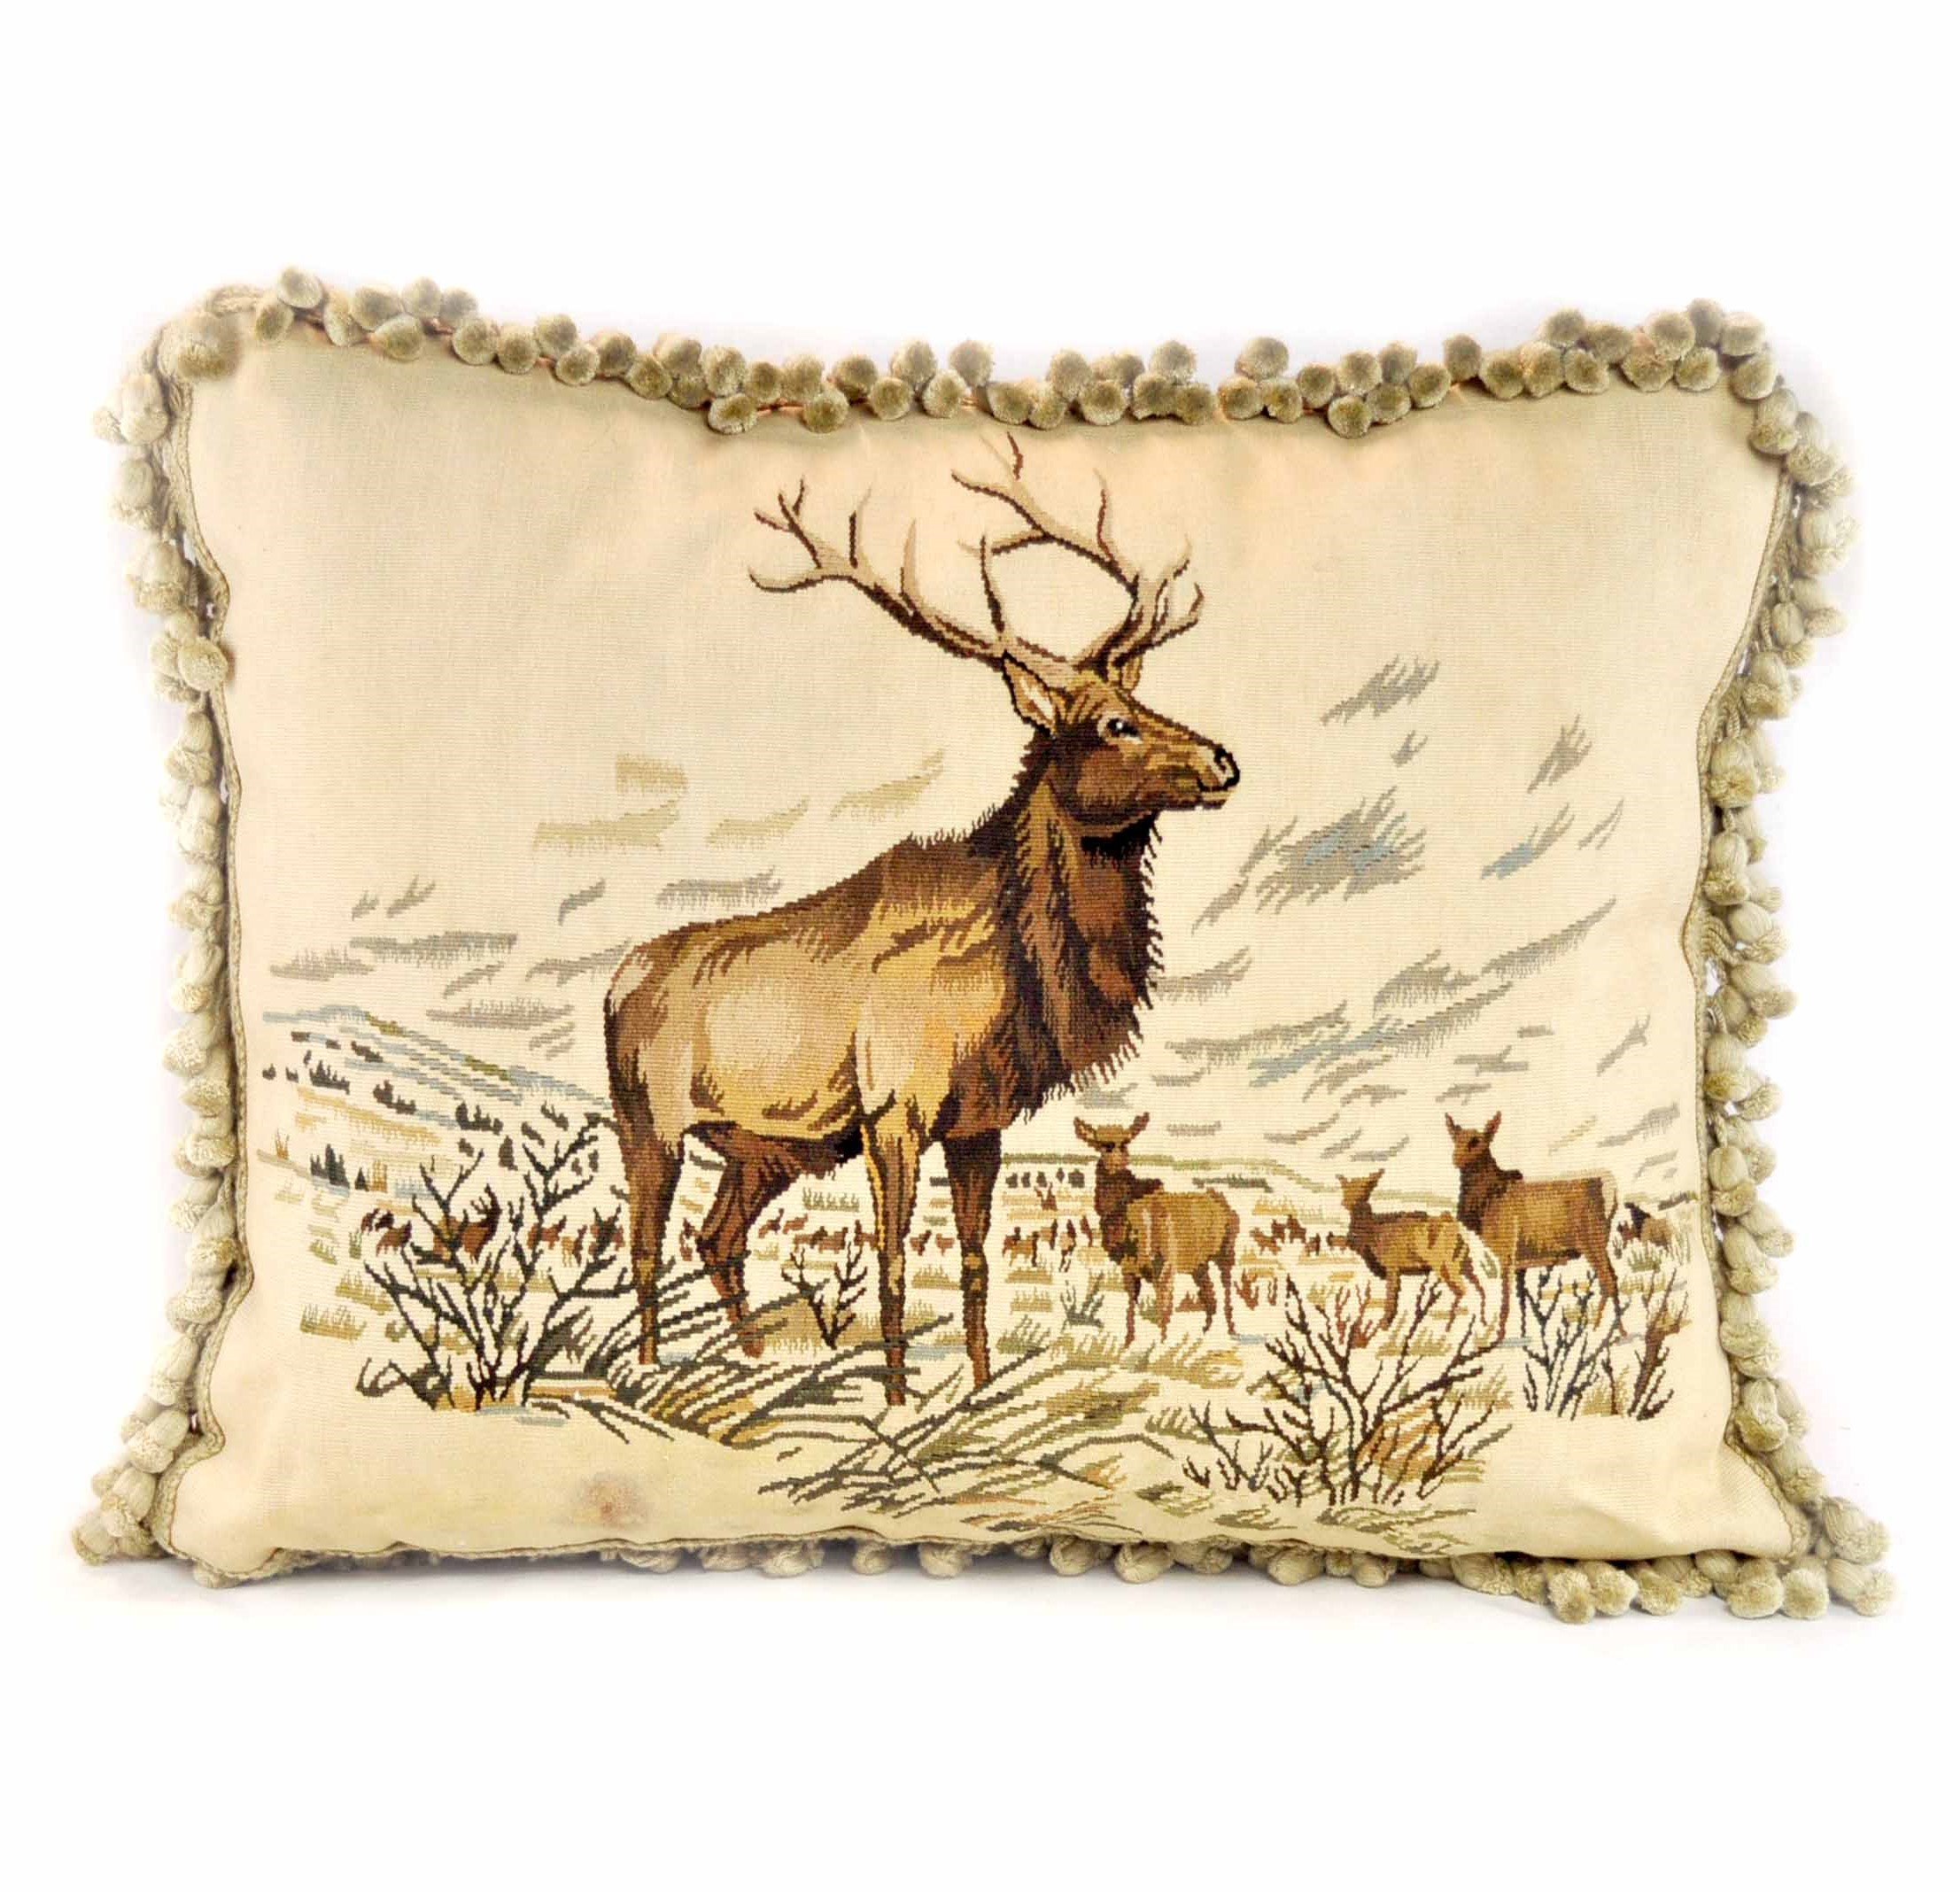 19×23 Handmade Moose Elk French Gobelin Tapestry Wool Aubusson Cushion Cover  Pillow Case 12980014